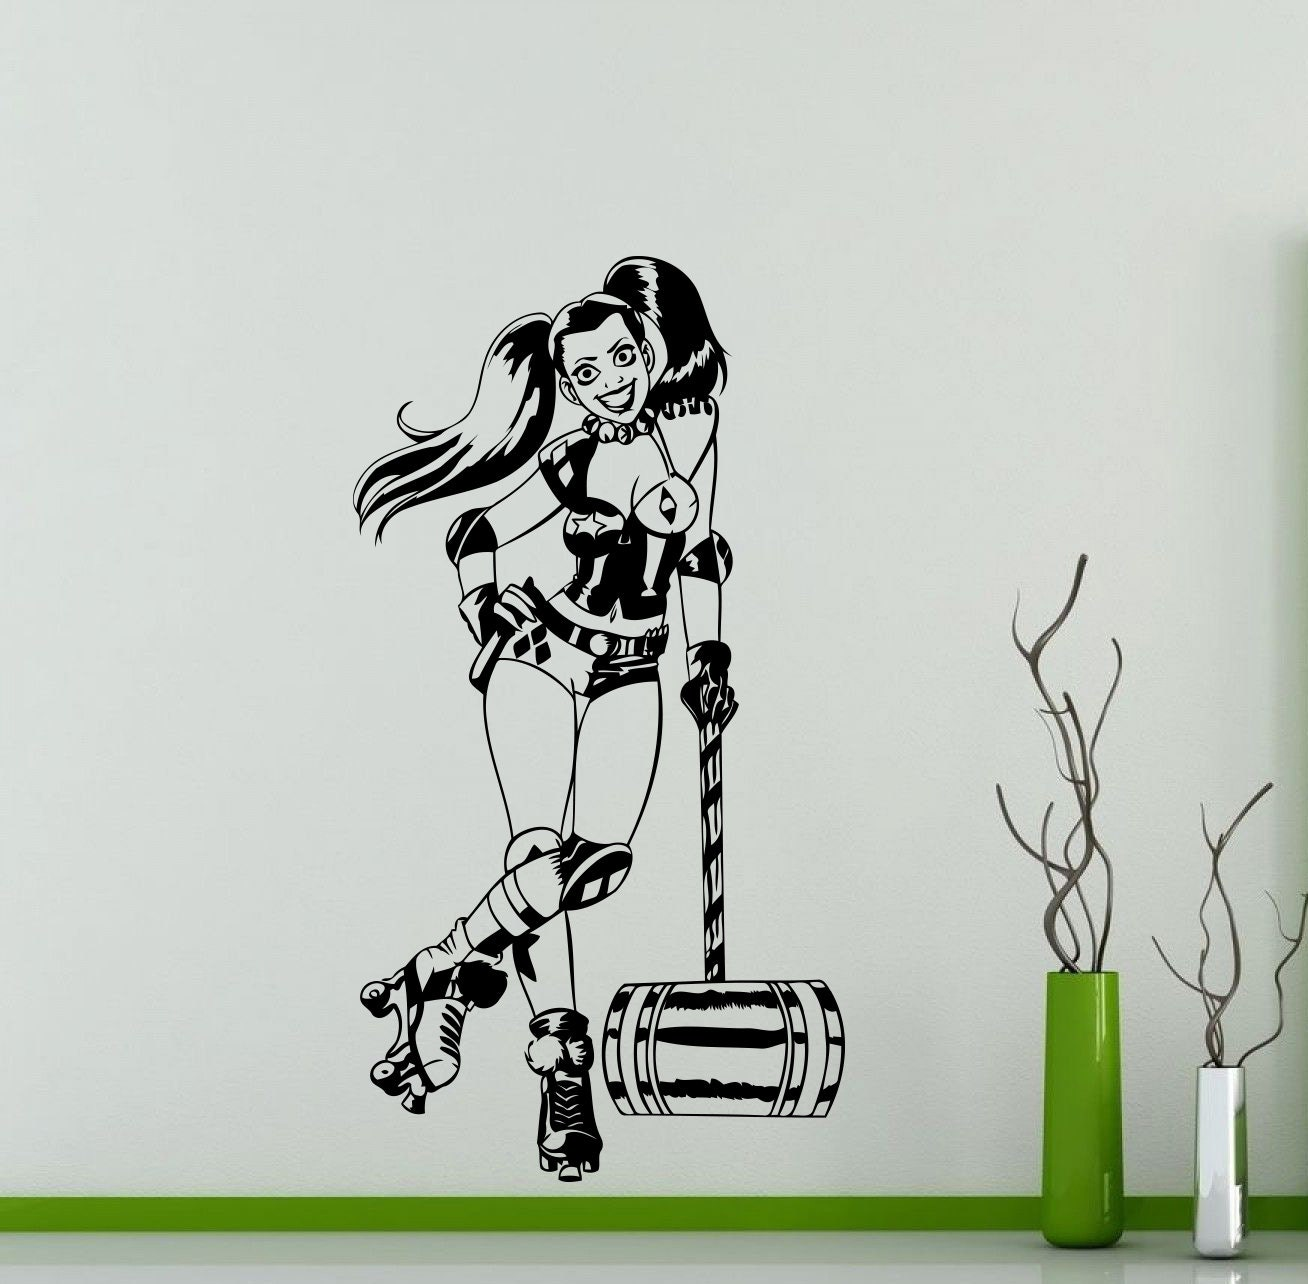 Harley quinn wall decal roller derby dc marvel comics zoom amipublicfo Gallery